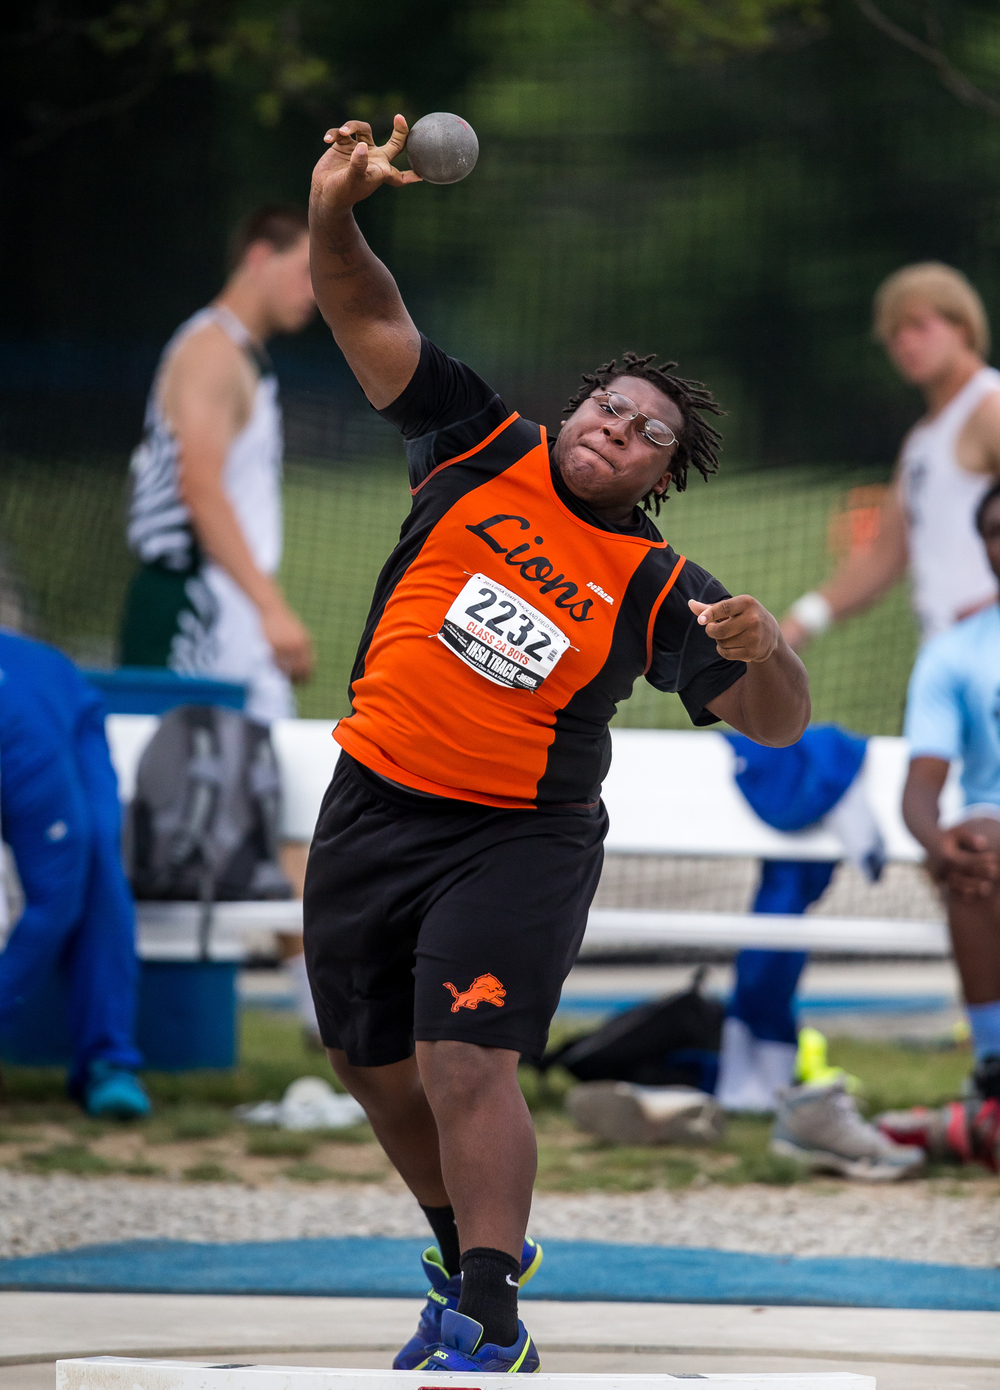 Lanphier's Montell Haynes competes in the Class 2A Shot Put during the IHSA Boys Track and Field State Finals at O'Brien Stadium, Saturday, May 30, 2015, in Charleston, Ill. Haynes finished 4th with a best throw of 52-07.00. Justin L. Fowler/The State Journal-Register